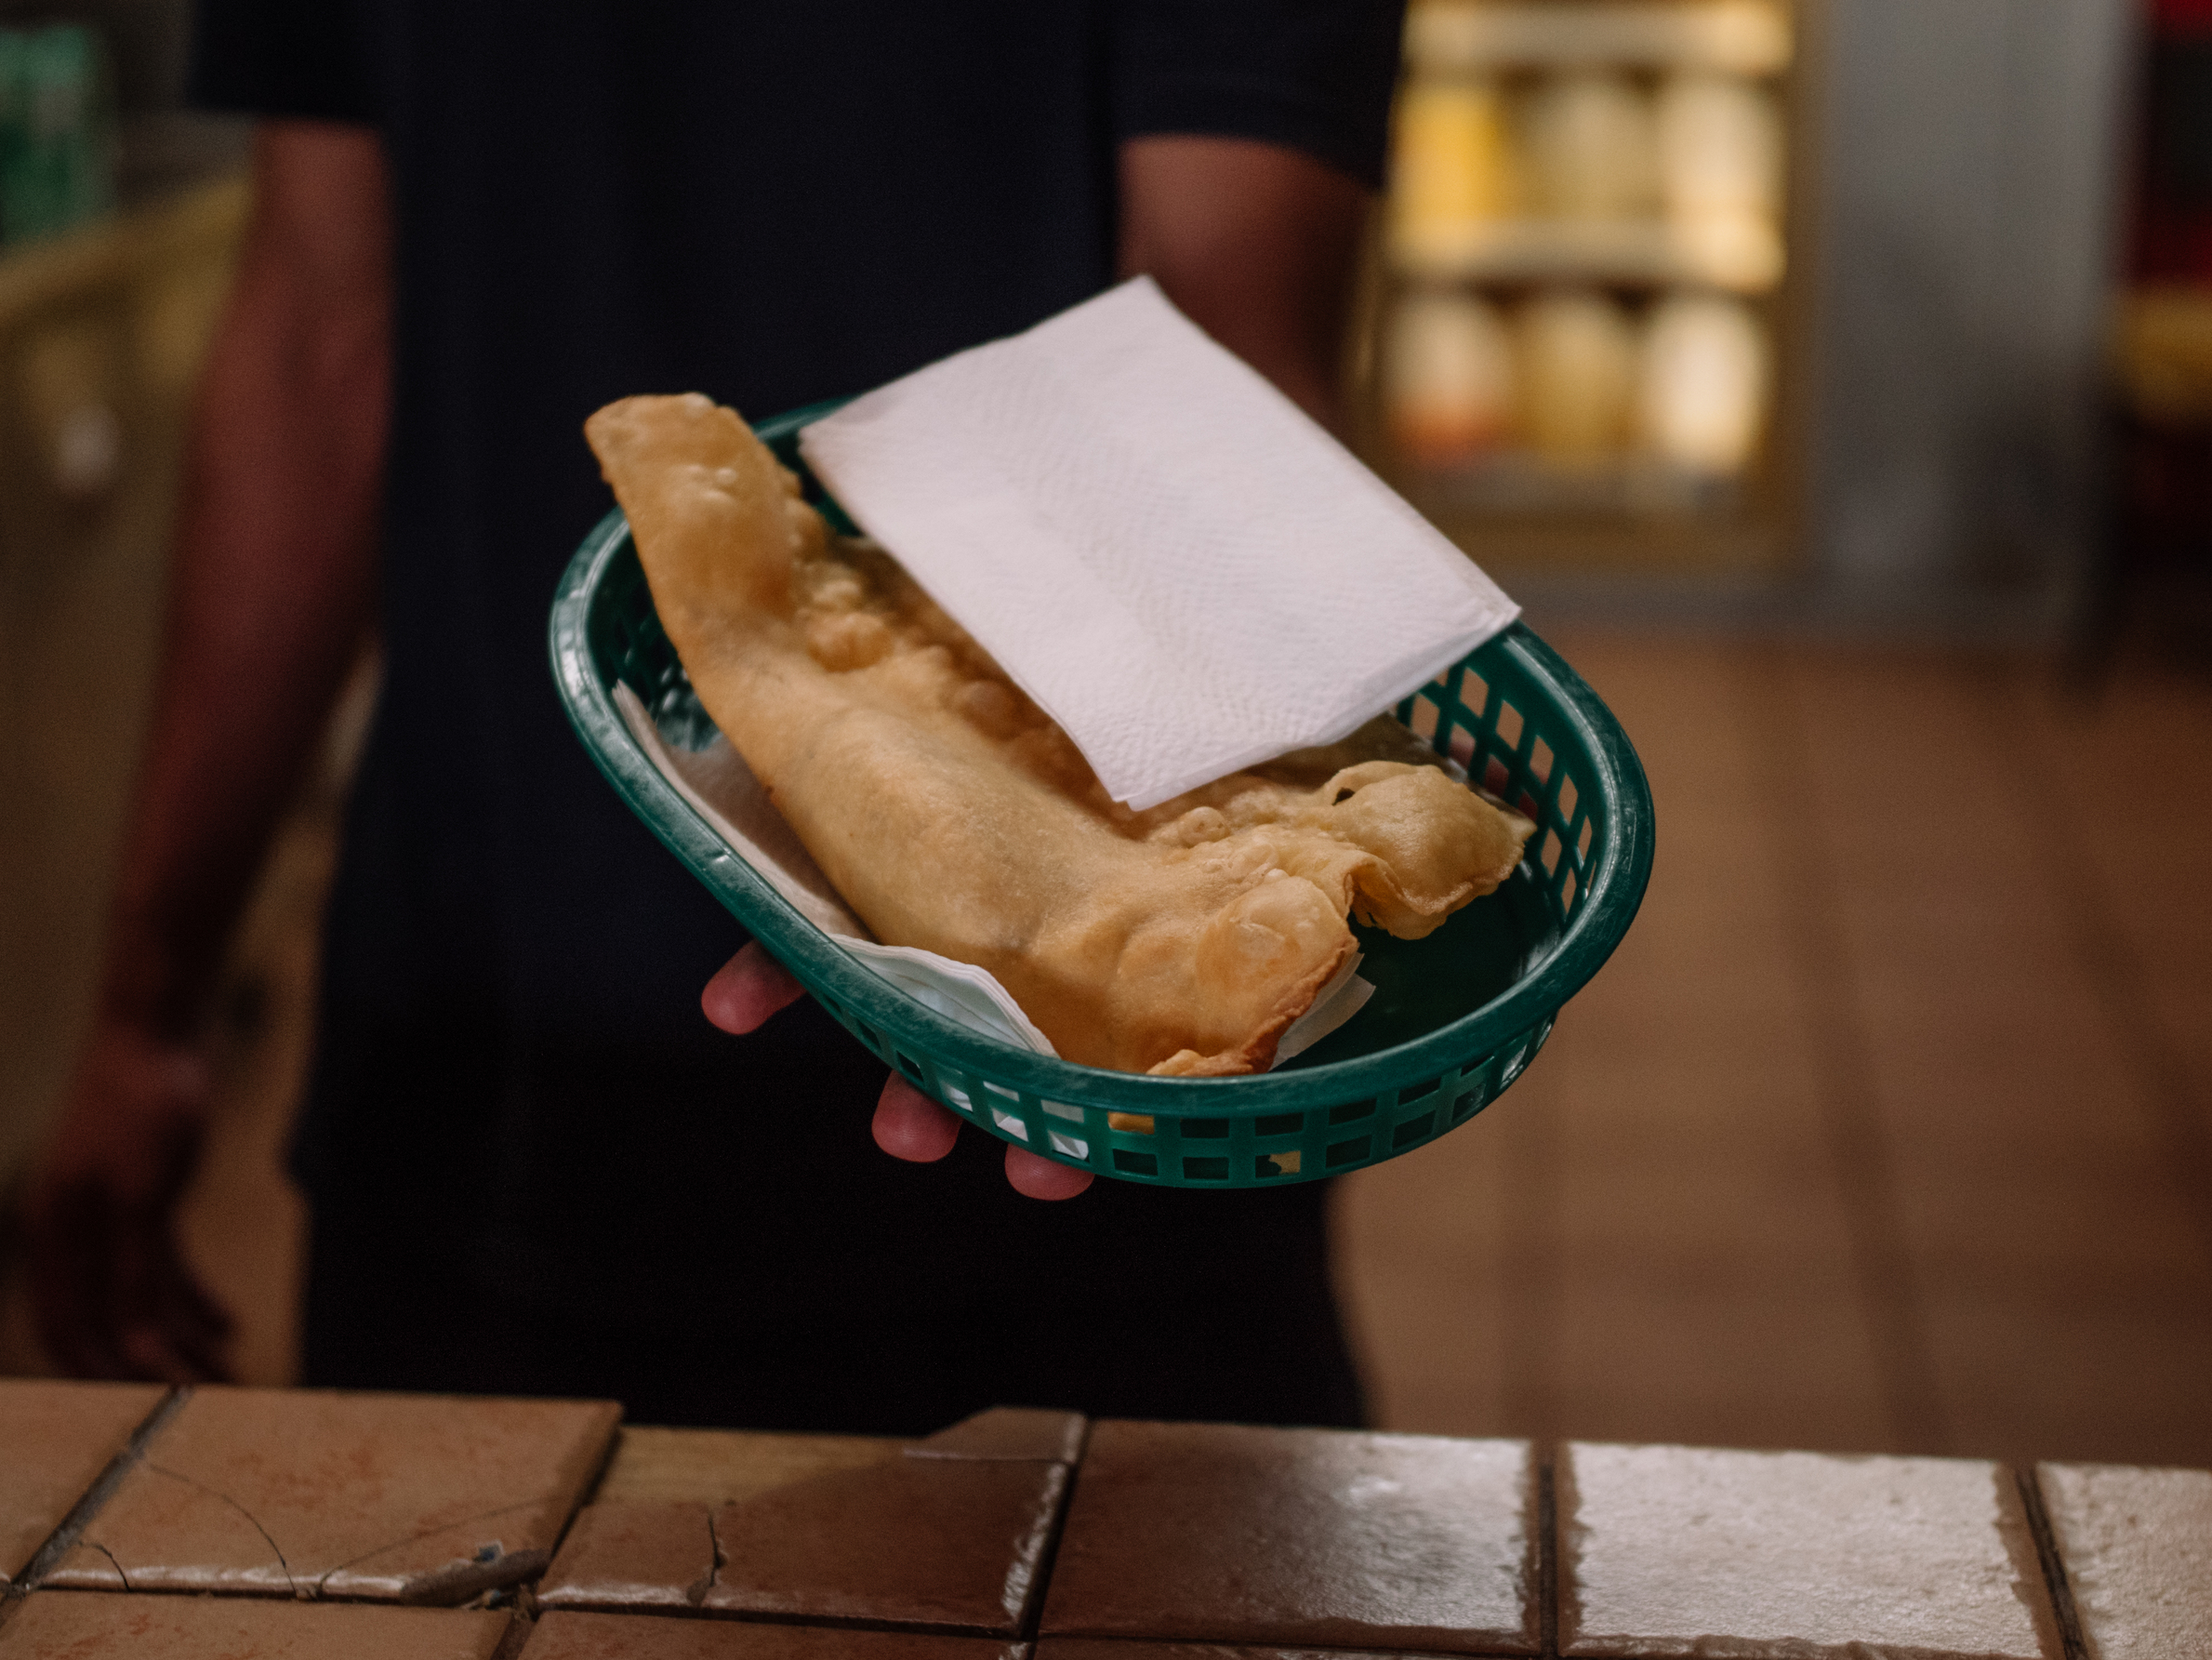 A server at Pastelillos Lamboy in Manati holds out a basket of pastelillos.